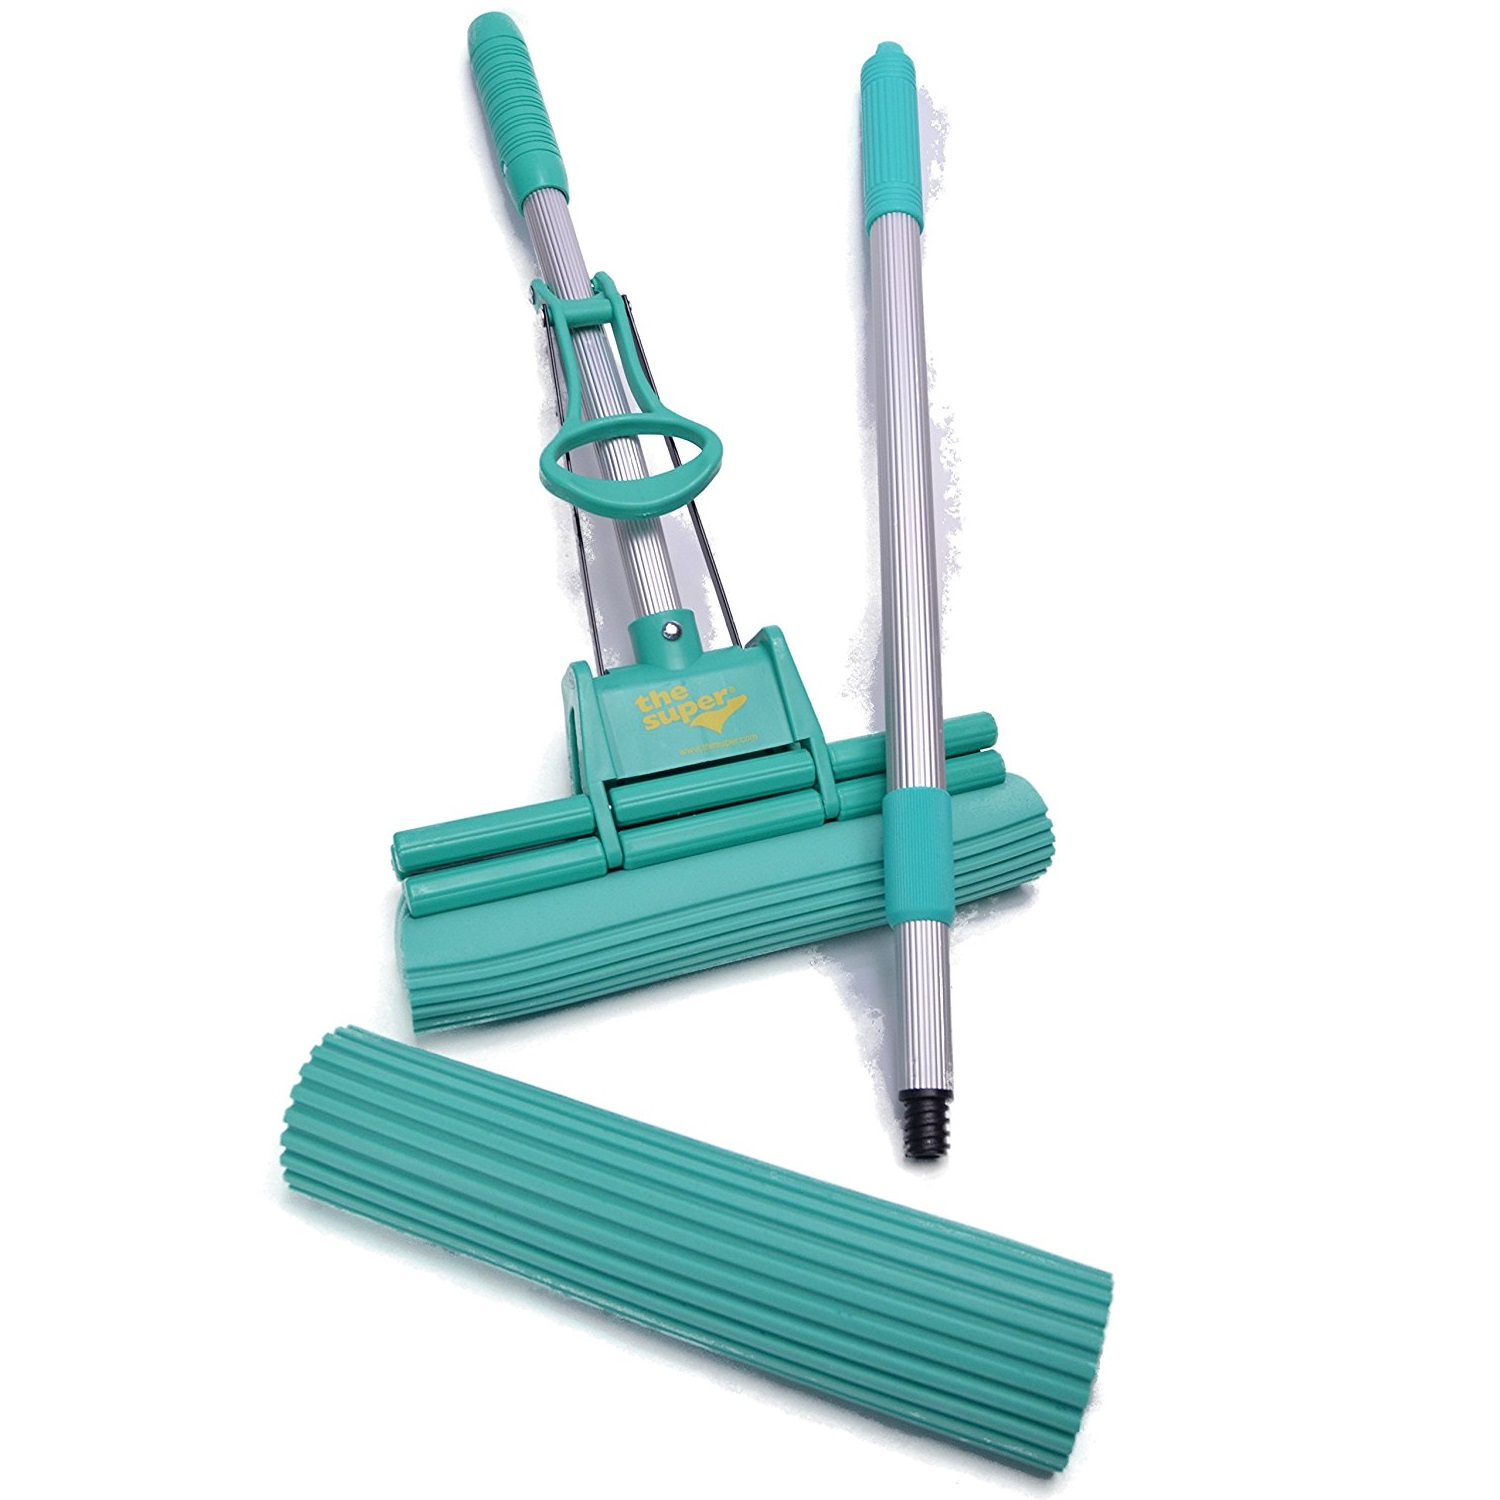 The Super PVA Sponge Mop